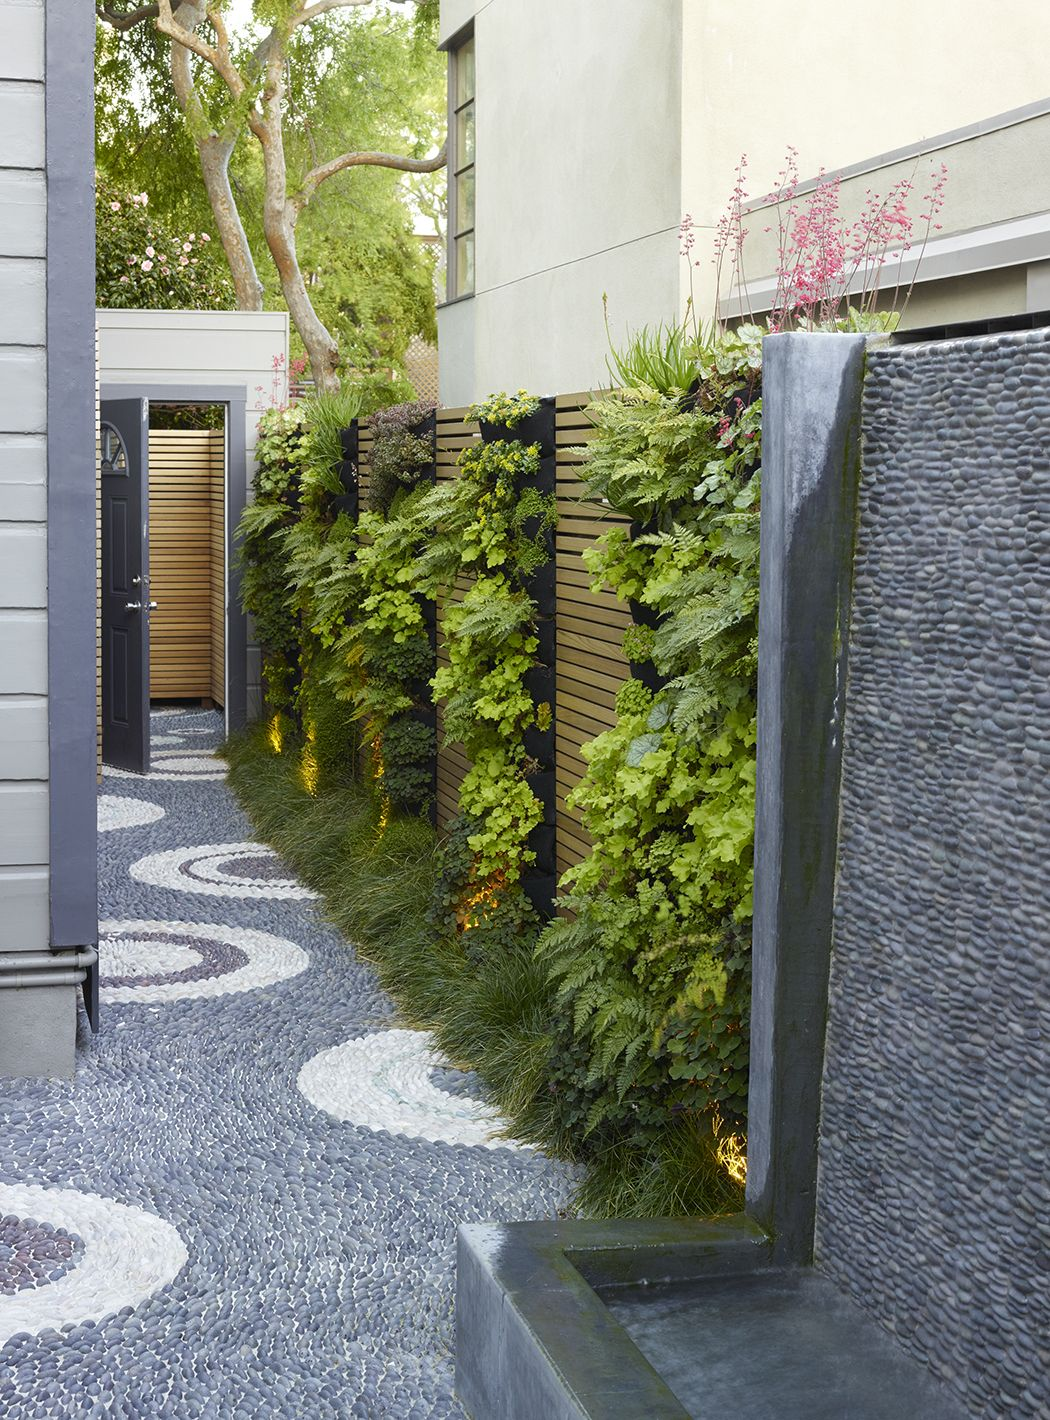 Mission Accomplished: A Modern Mosaic Garden in SF